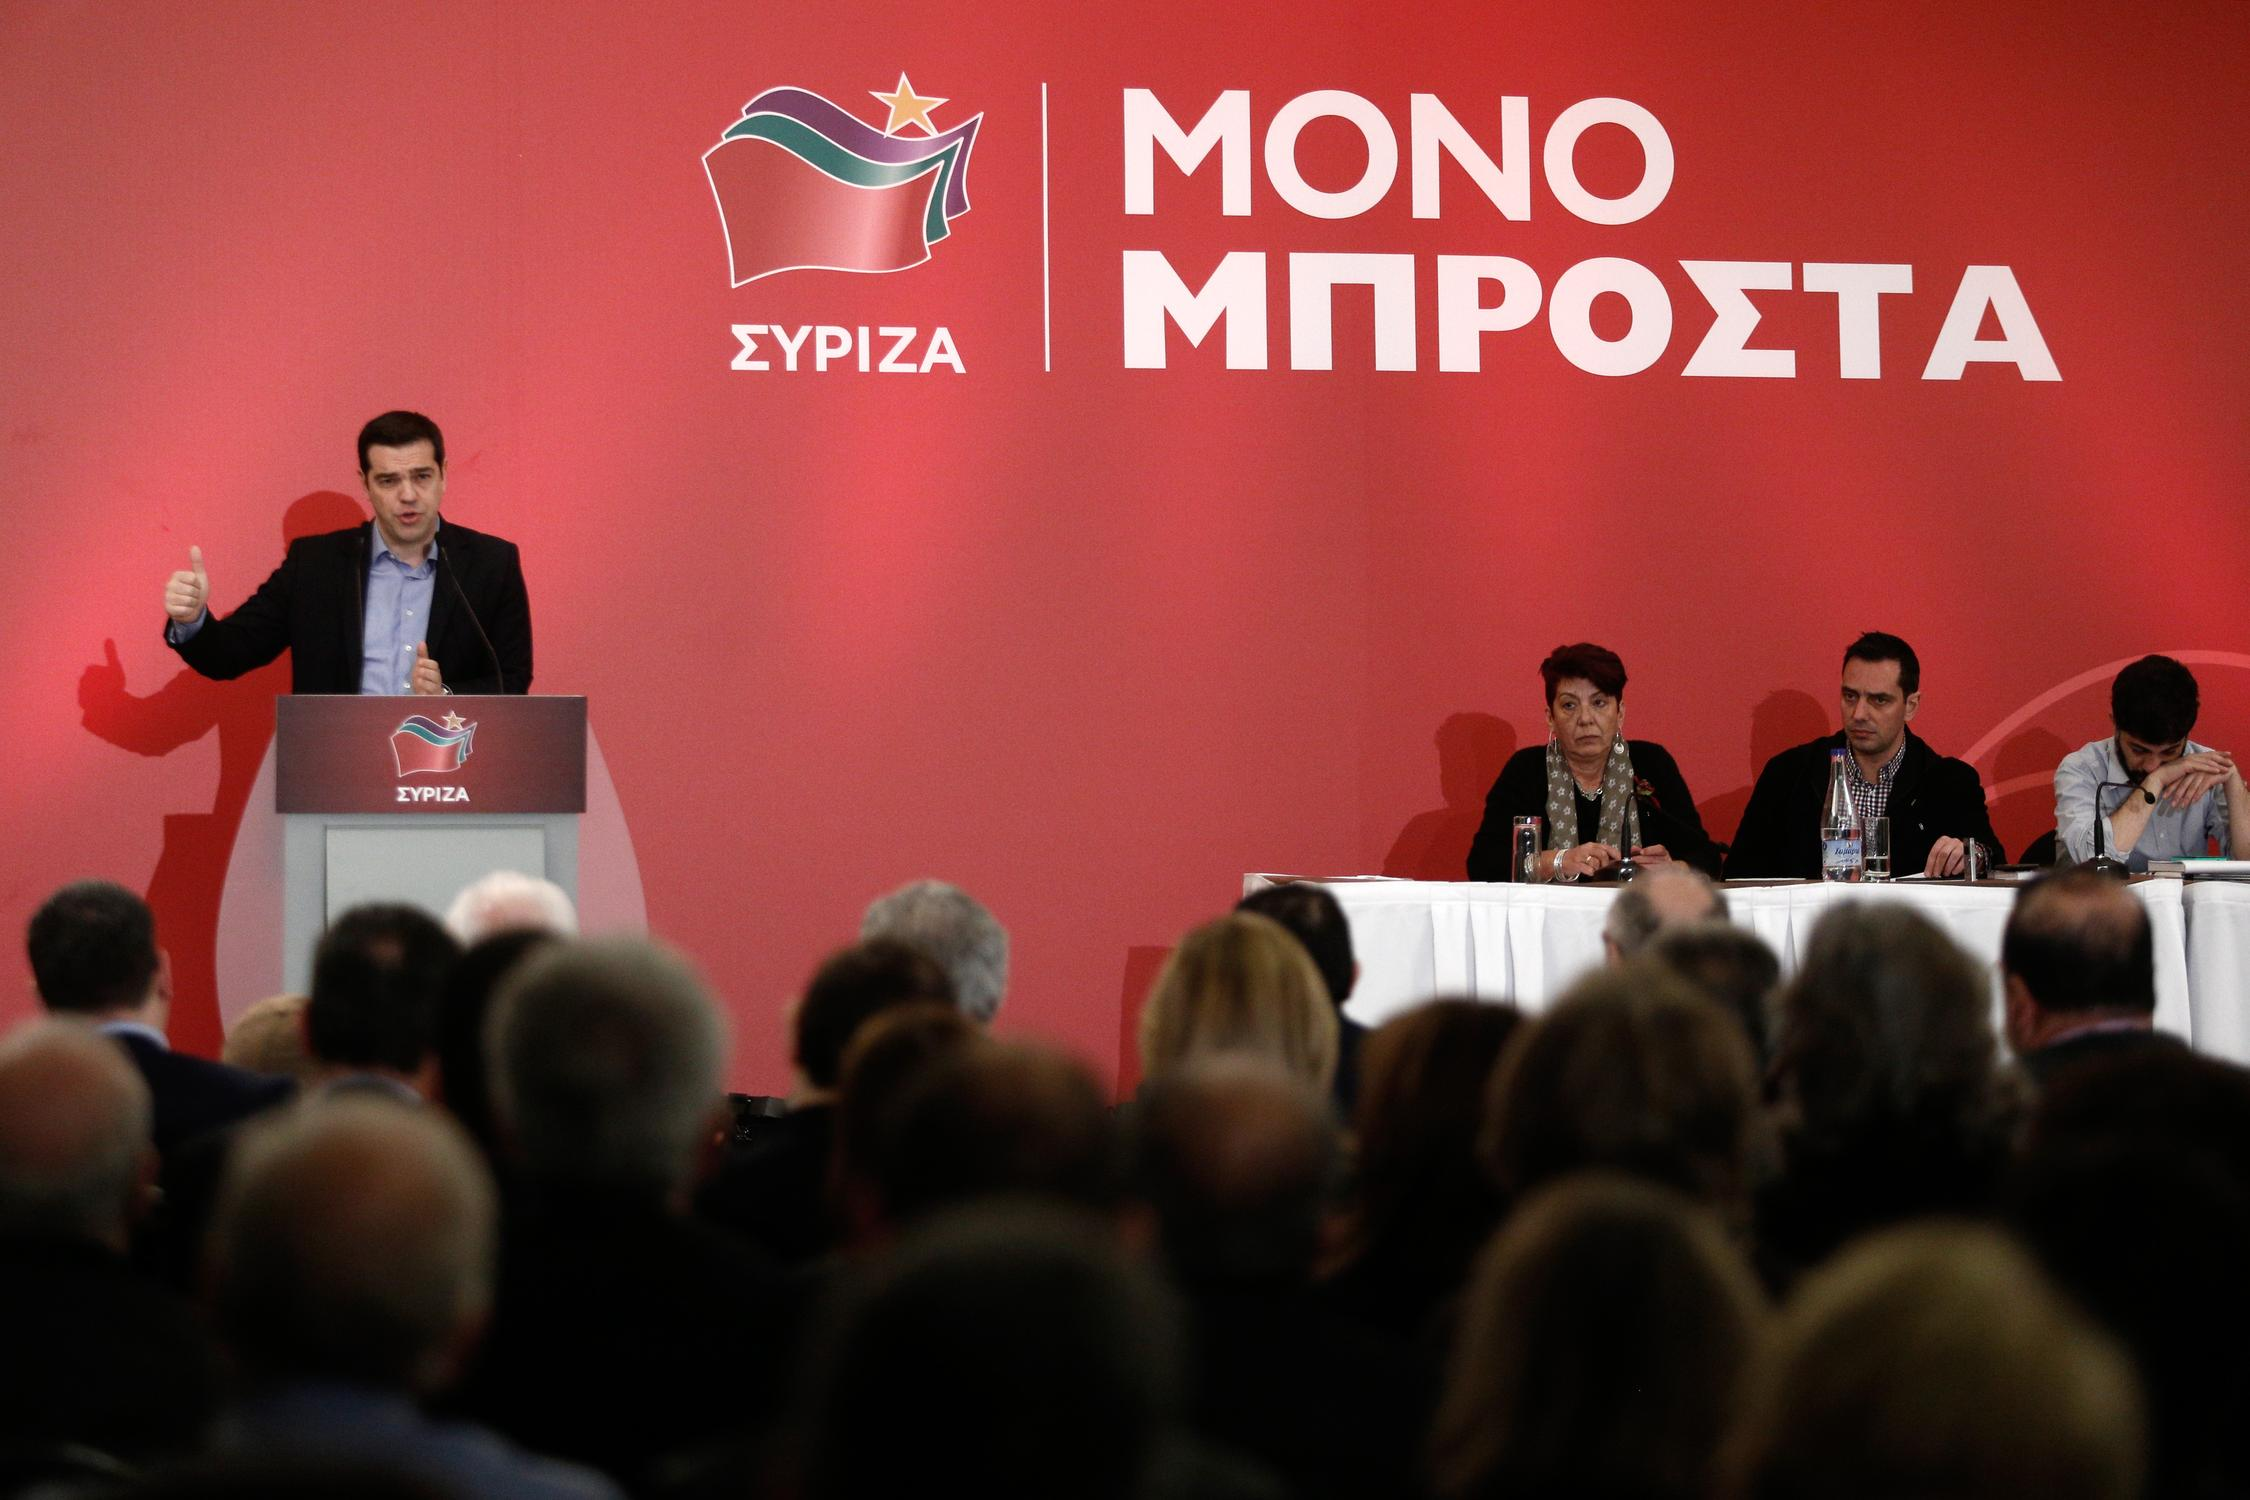 Greece's Prime Minister Alexis Tsipras delivers a speech at a parliamentary committee of SYRIZA about refugee crisis, in Athes, Greece on March 6, 2016. / Ομιλία του πρωθυπουργού Αλέξη Τσίπρα στην Κοινοβουλευτική Επιτροπή του ΣΥΡΙΖΑ με θέμα το προσφυγικό, Αθήνα στις 6 Μαρτίου 2016.